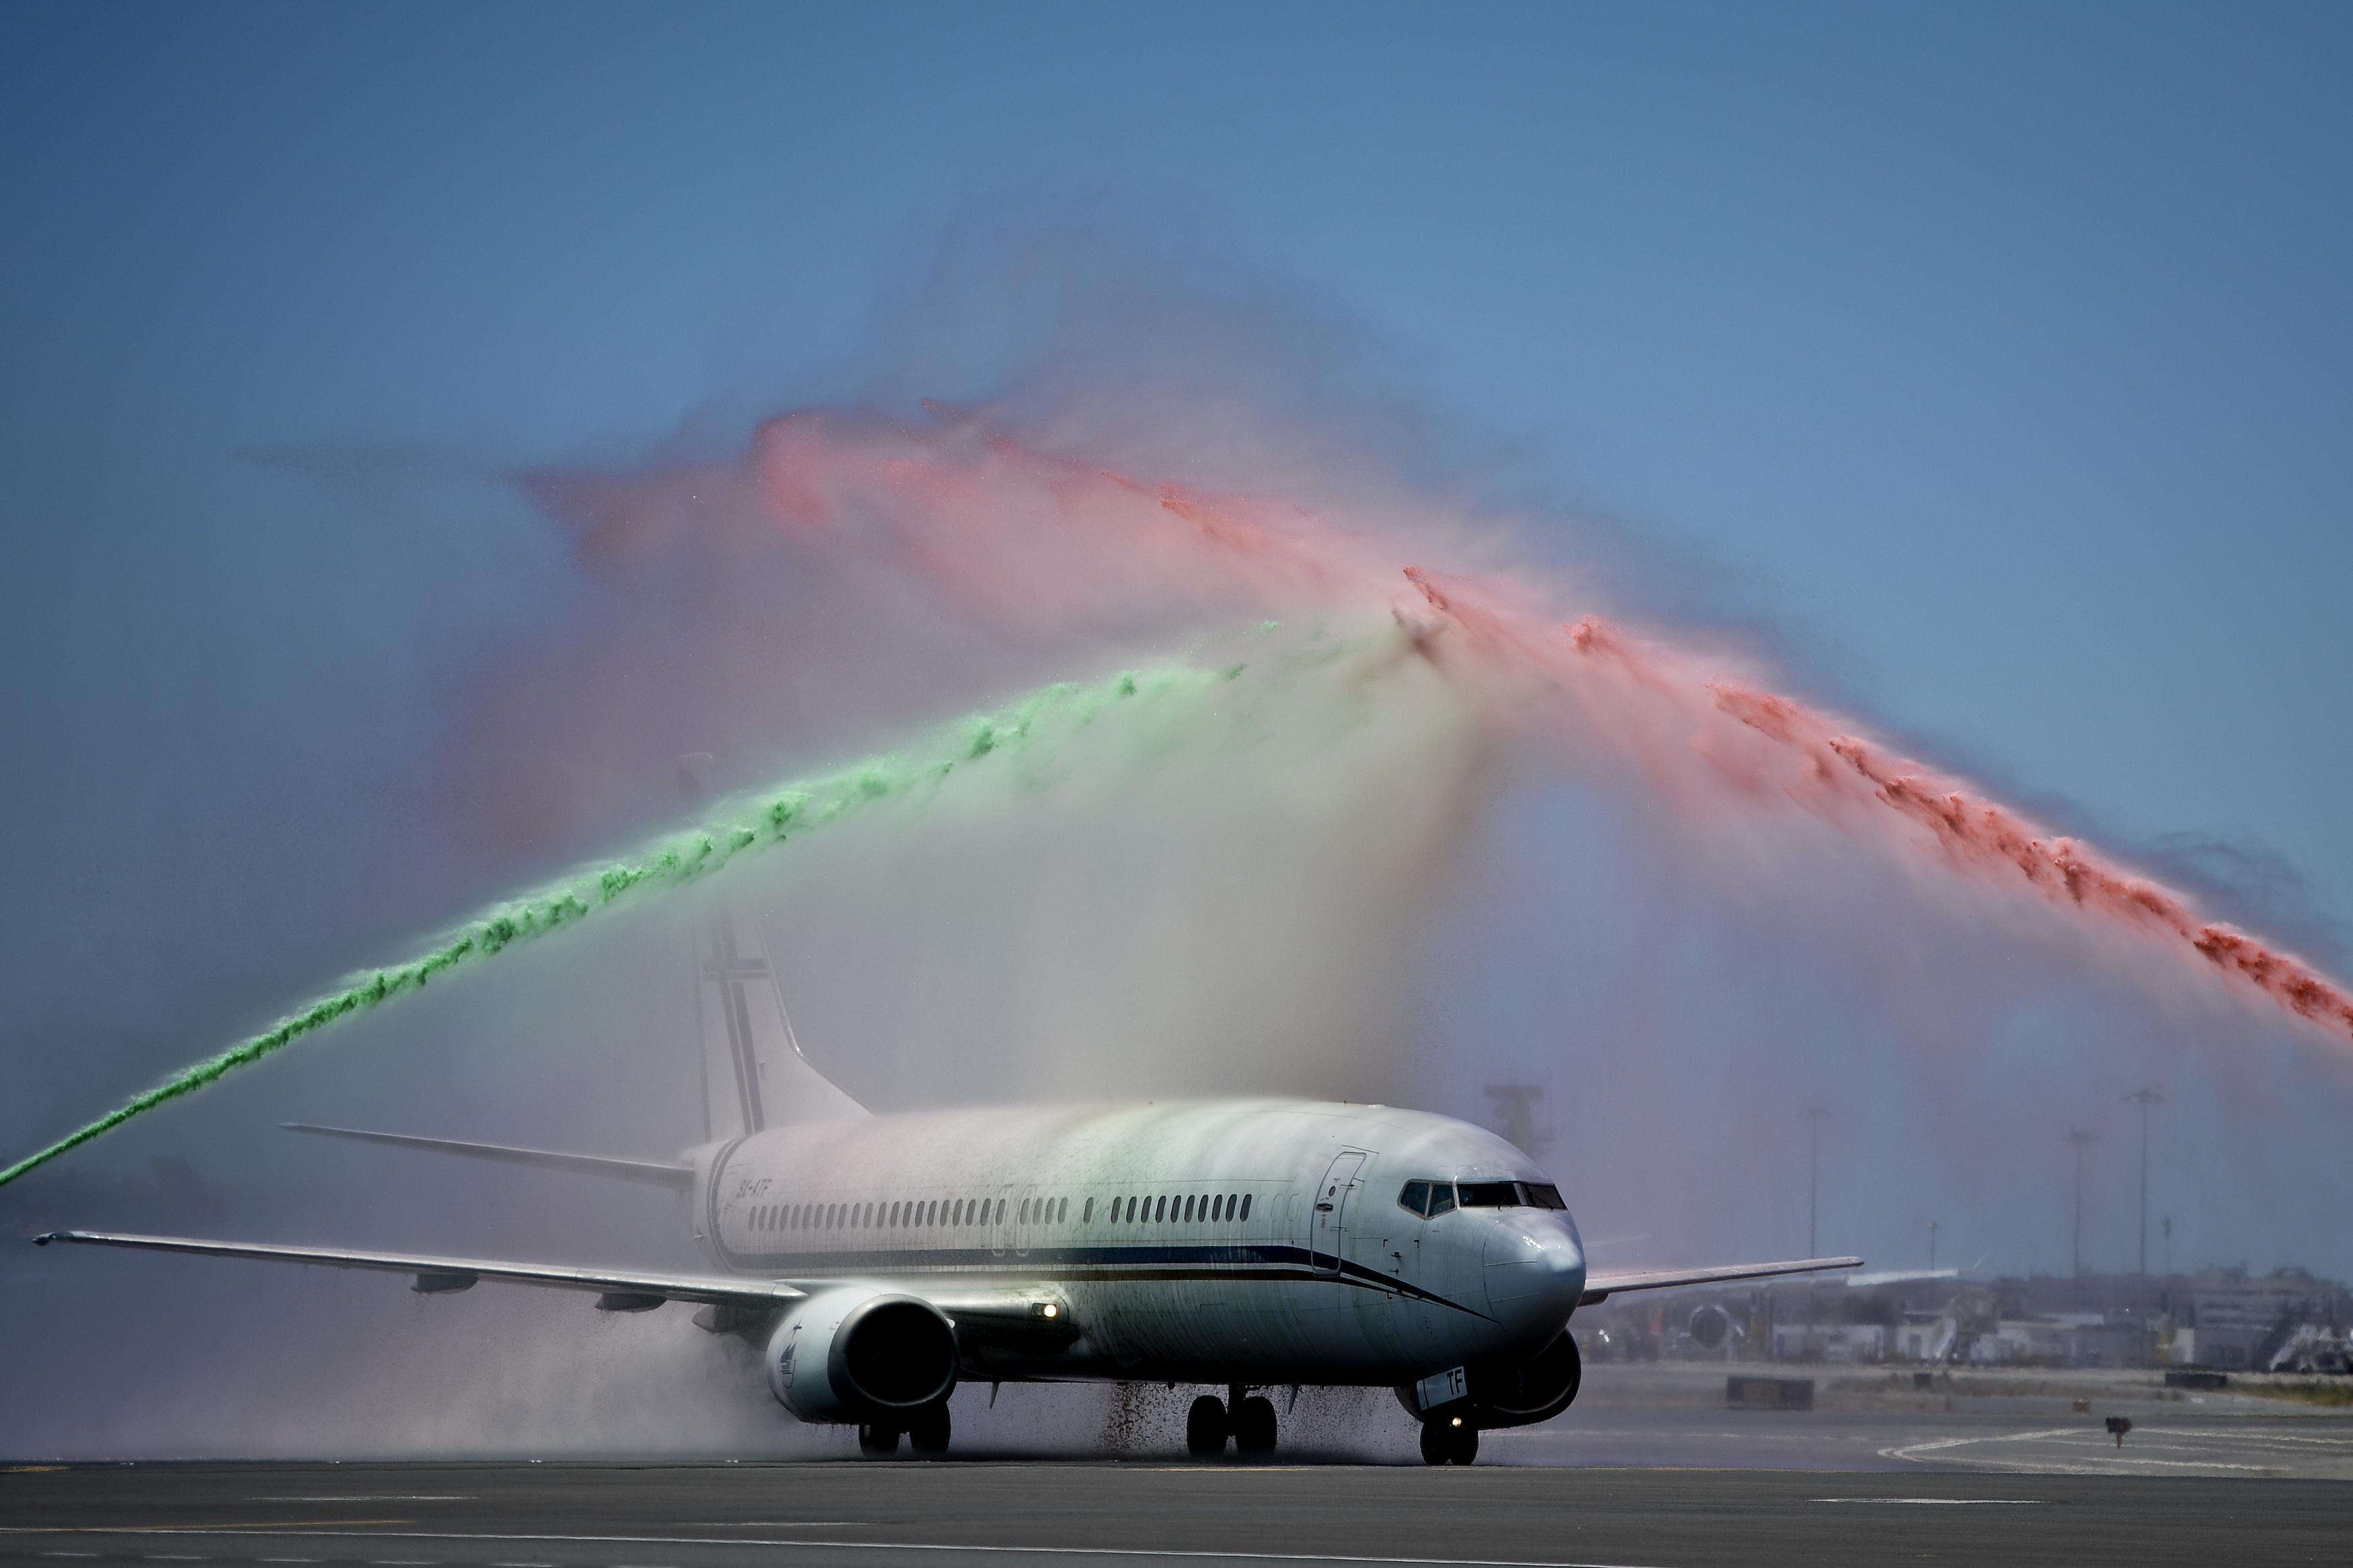 An airport firefighter's unit spray water in the national colours over the aircraft carrying Portugal's national football team members during a welome at Lisbon airport on July 11, 2016 after the Euro 2016 final football win over France yesterday. The Portuguese football team led by Cristiano Ronaldo returned home to a heroes' welcome today after their upset 1-0 win triumph over France in the Euro 2016 final.  / AFP PHOTO / PATRICIA DE MELO MOREIRA